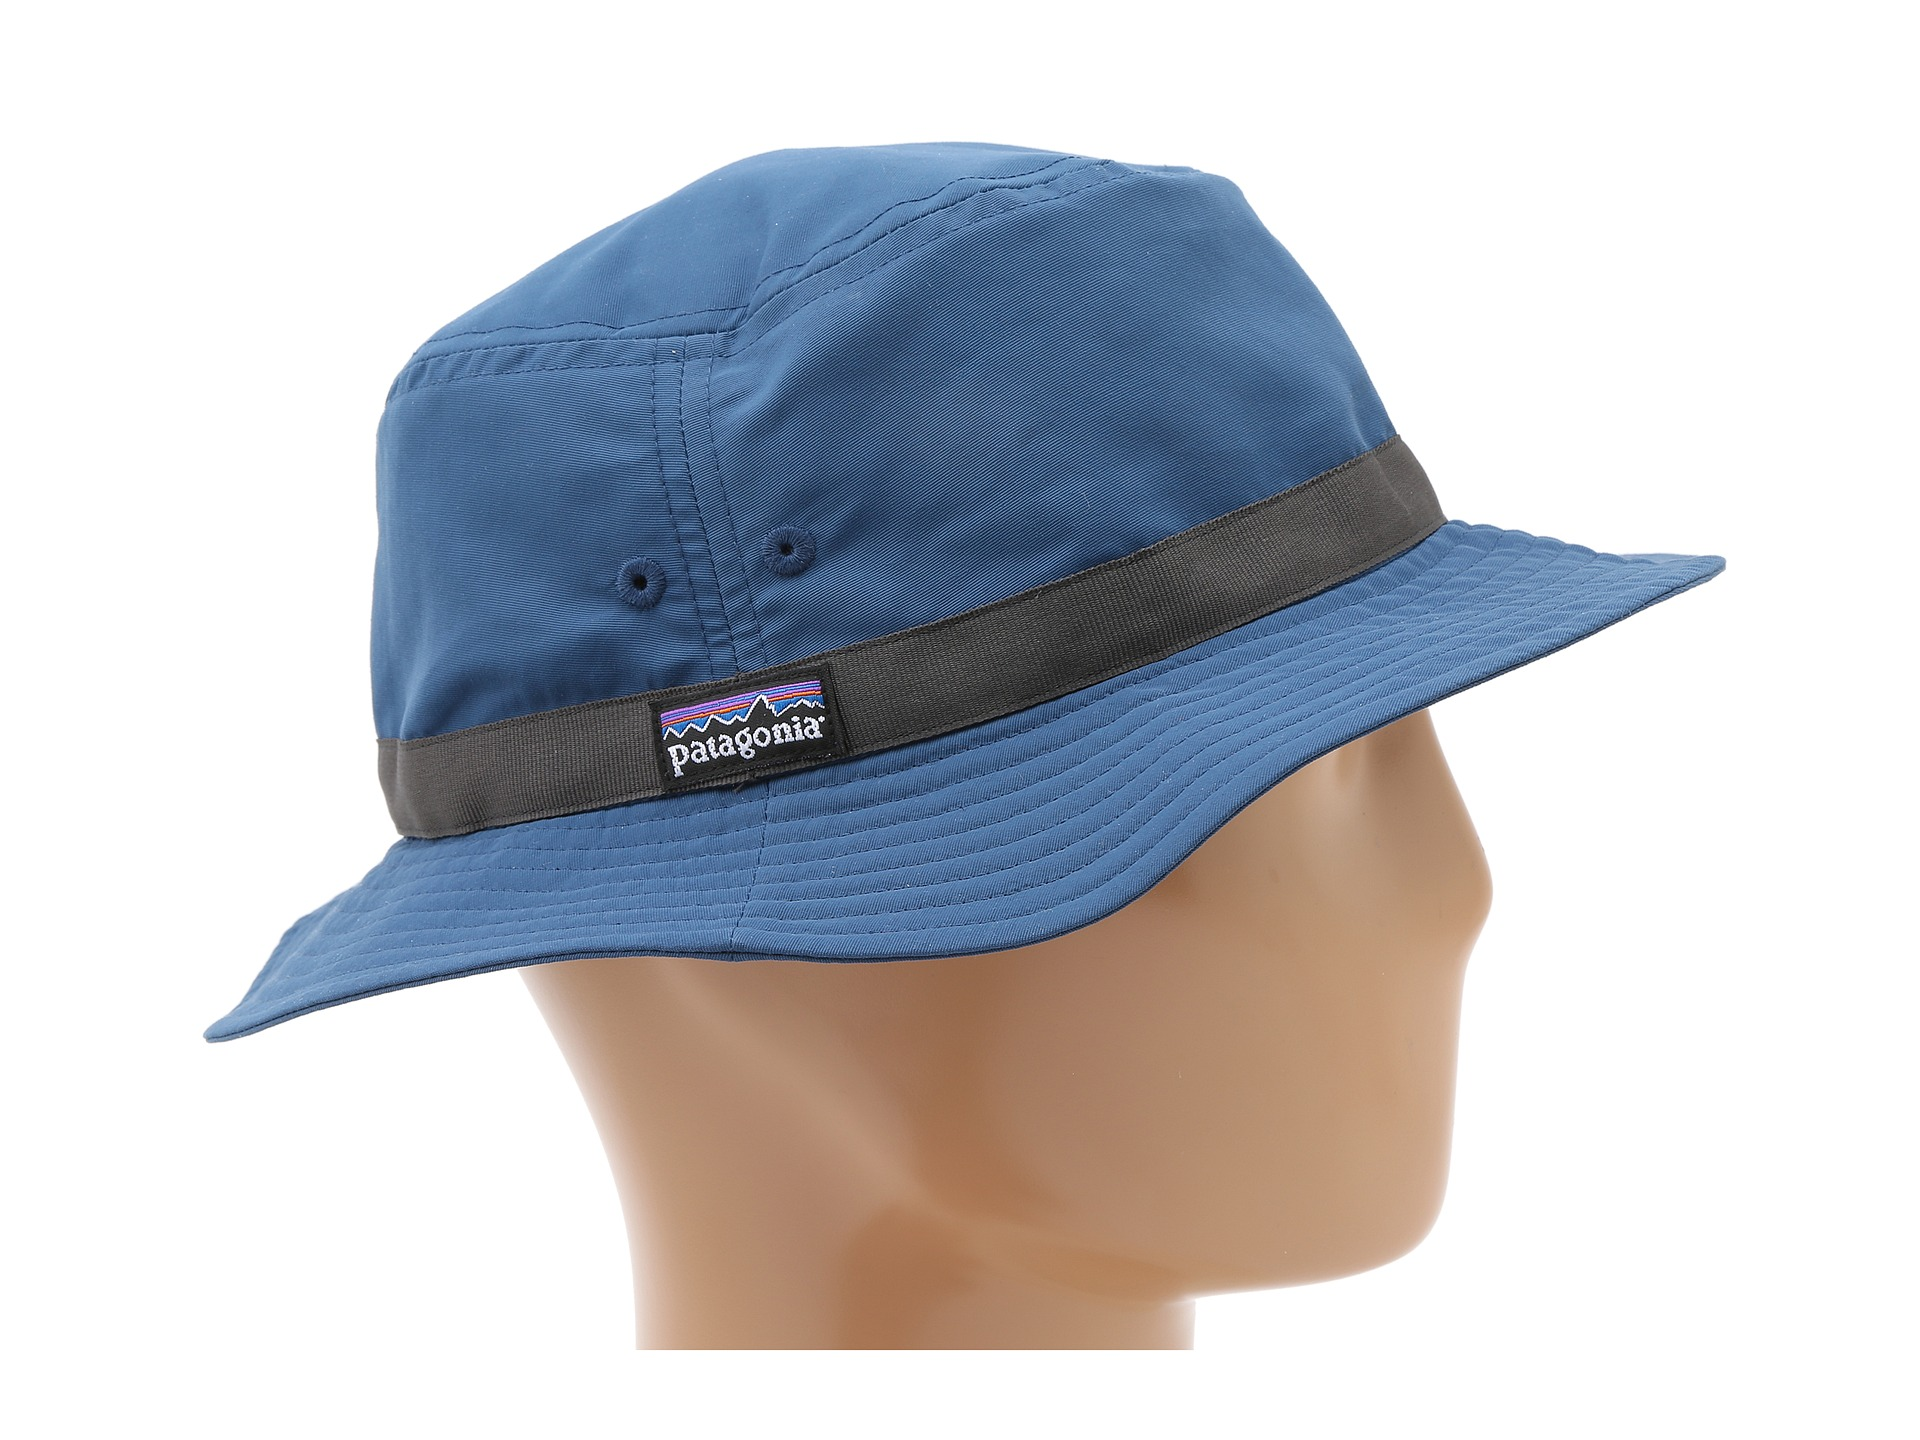 eae6051e56c patagonia bucket hat on PopScreen